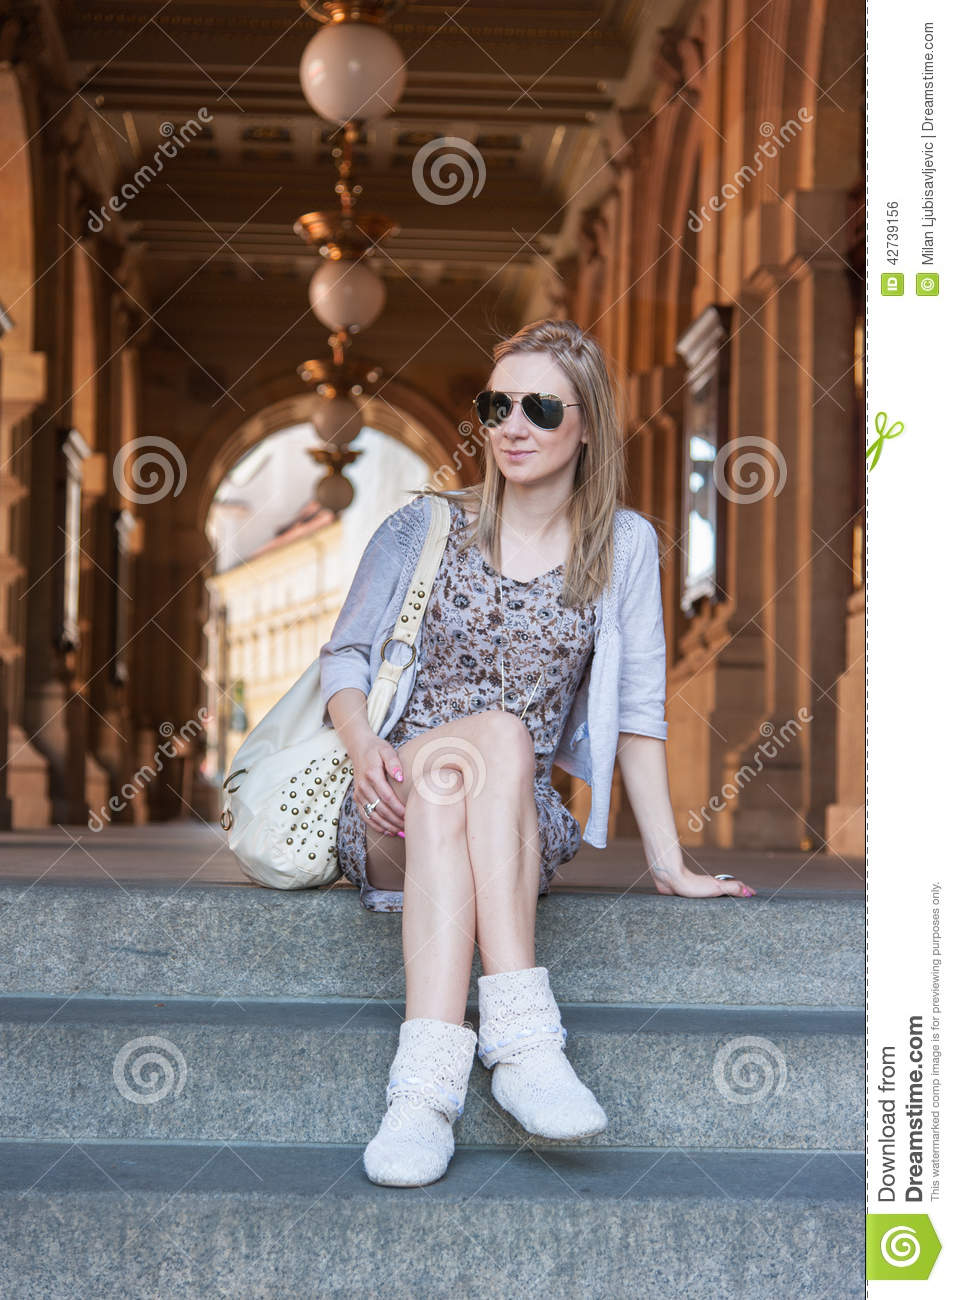 Girl in Prague Streets stock photo. Image of theater